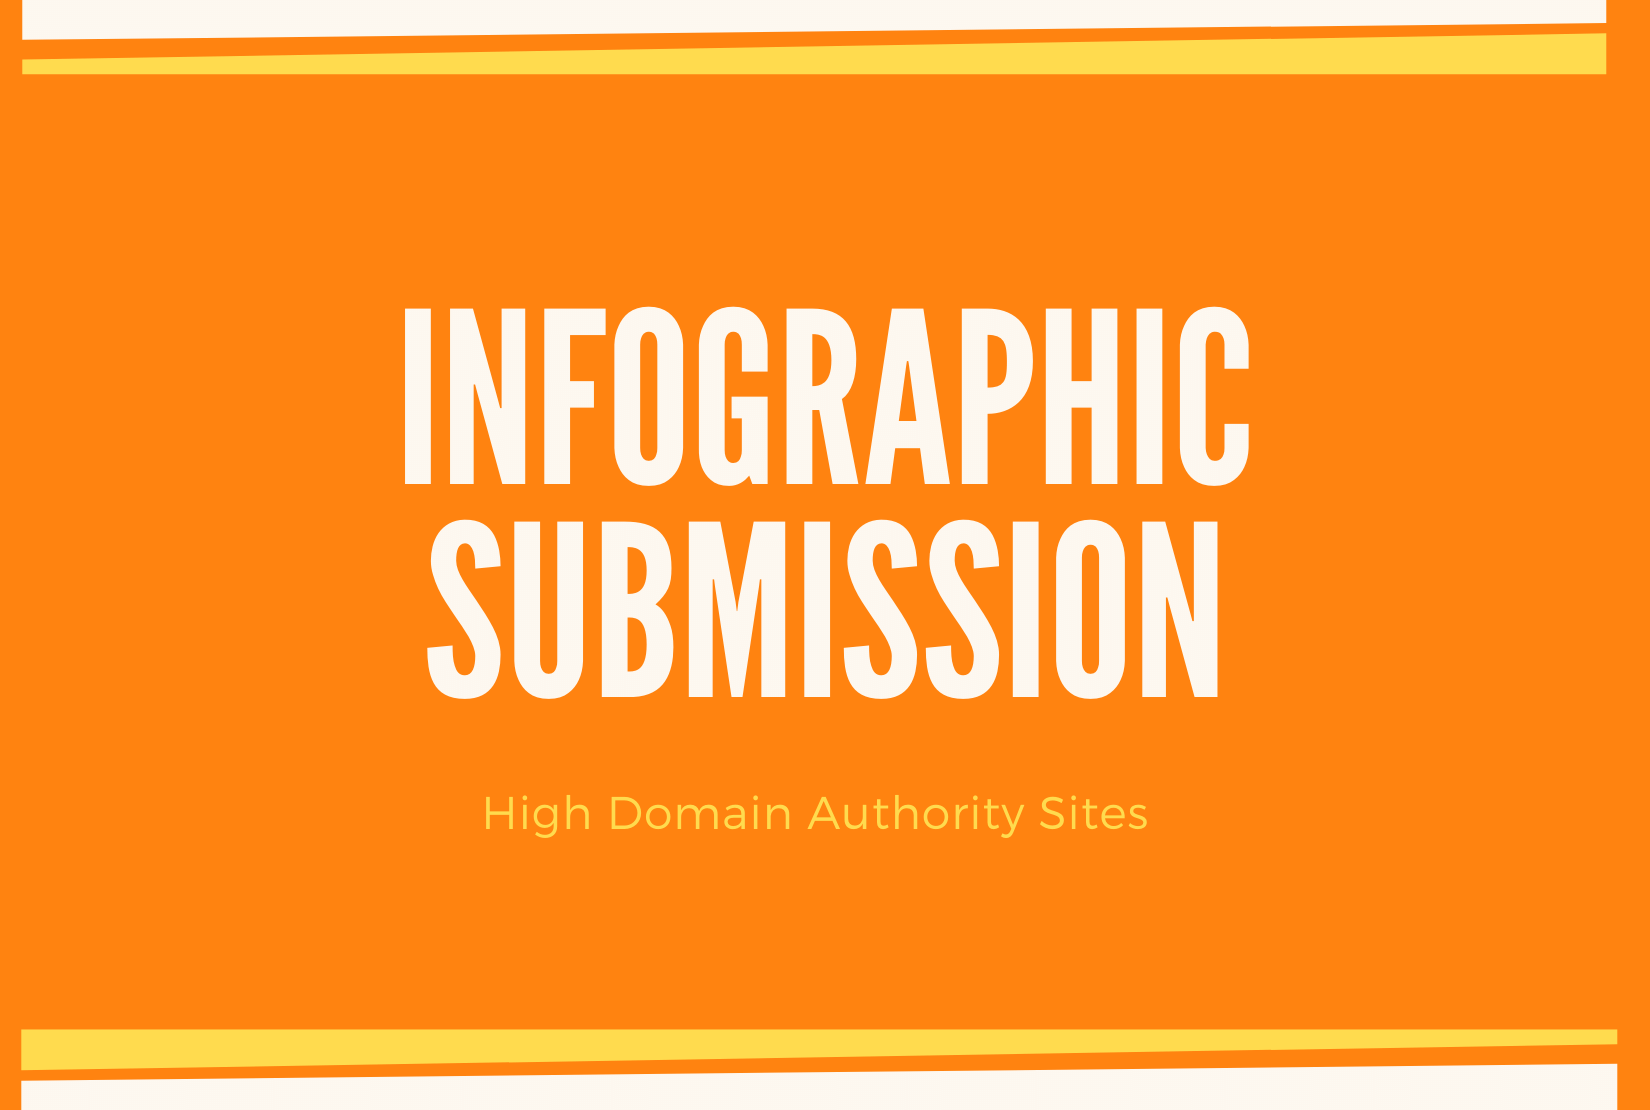 I will do manual infographic submission in 50 high domain authority sites.